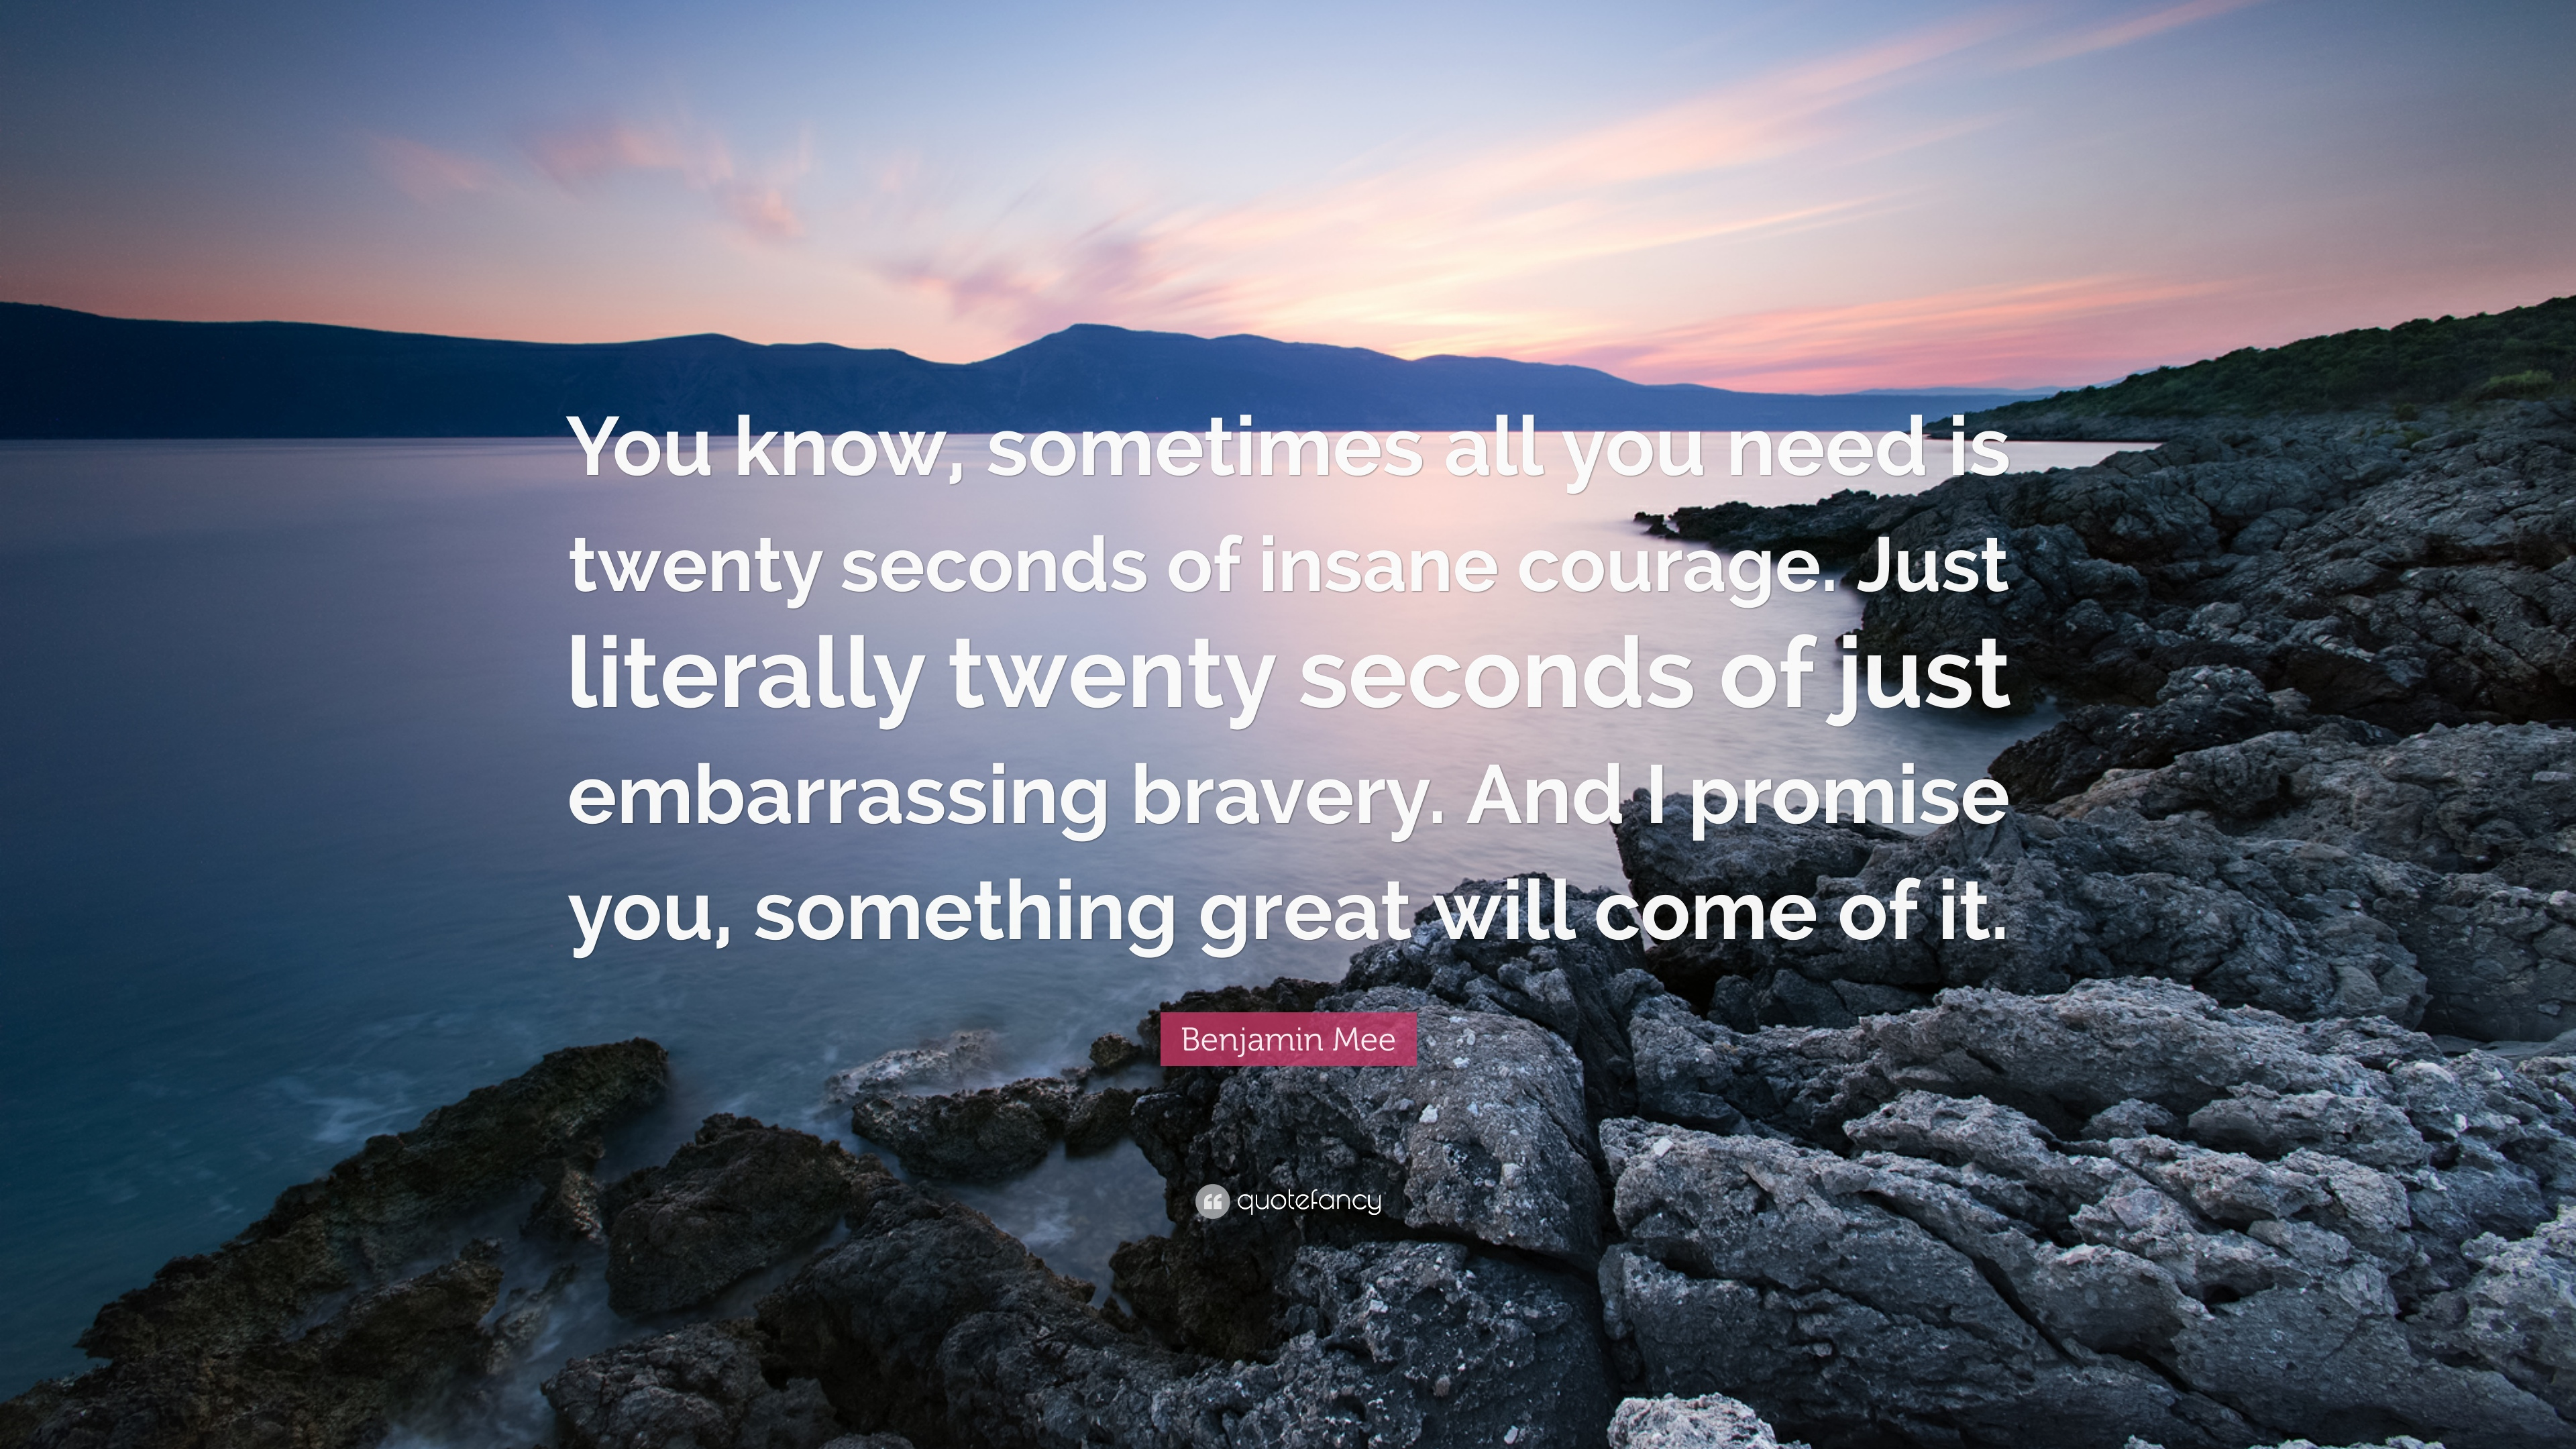 Captivating Benjamin Mee Quote: U201cYou Know, Sometimes All You Need Is Twenty Seconds Of